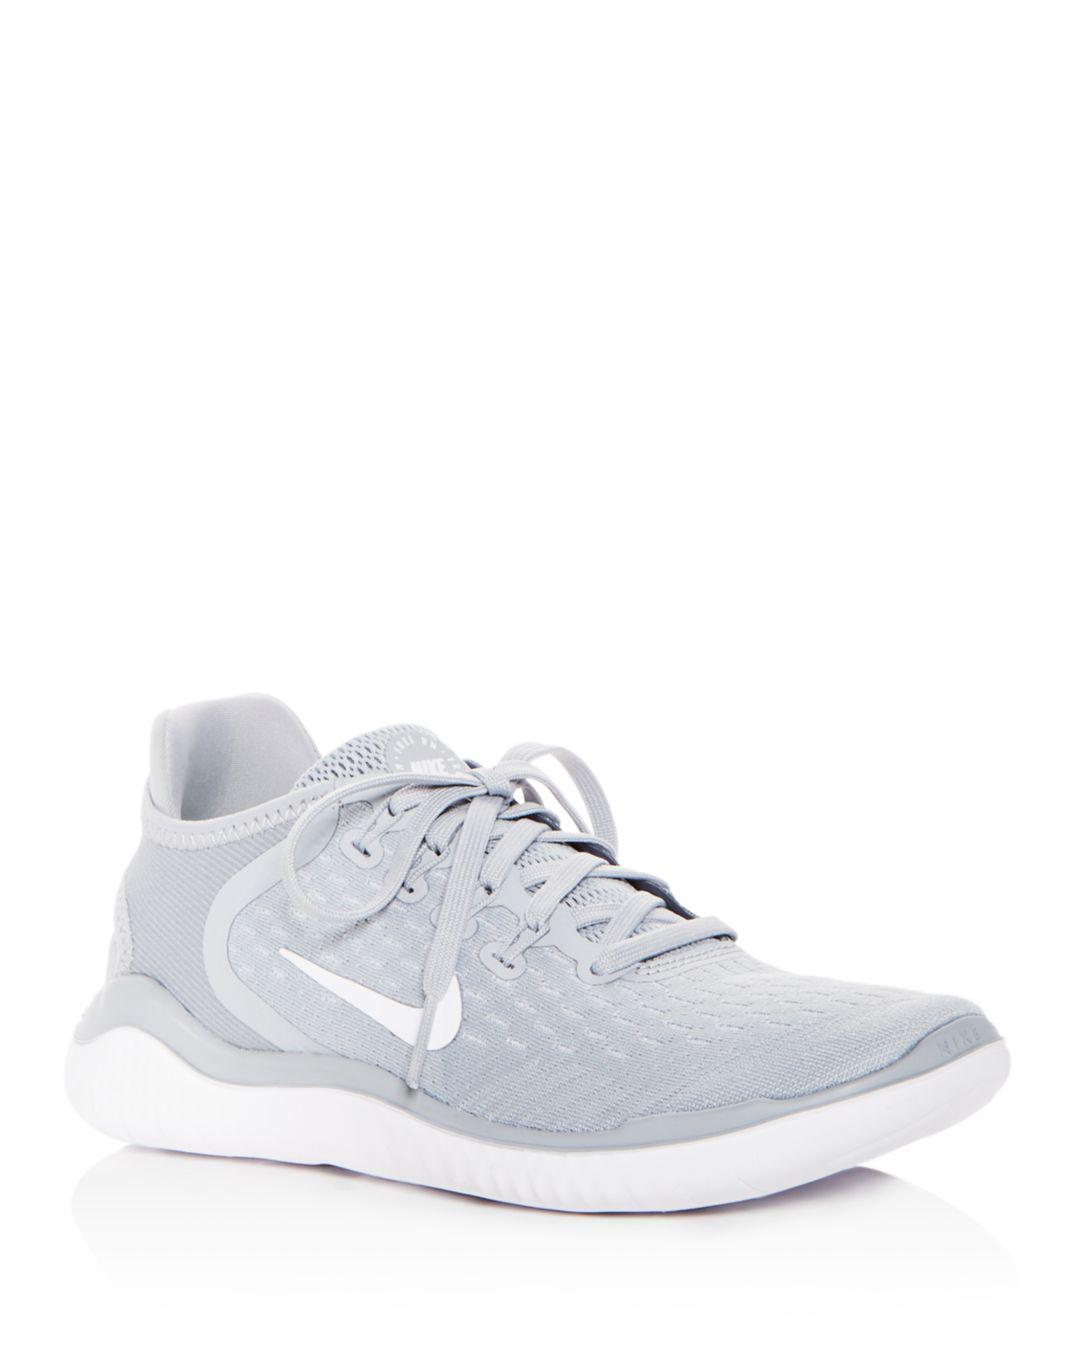 premium selection b6bb0 5eda8 Lyst - Nike Women s Free Rn 2018 Lace-up Sneakers in White